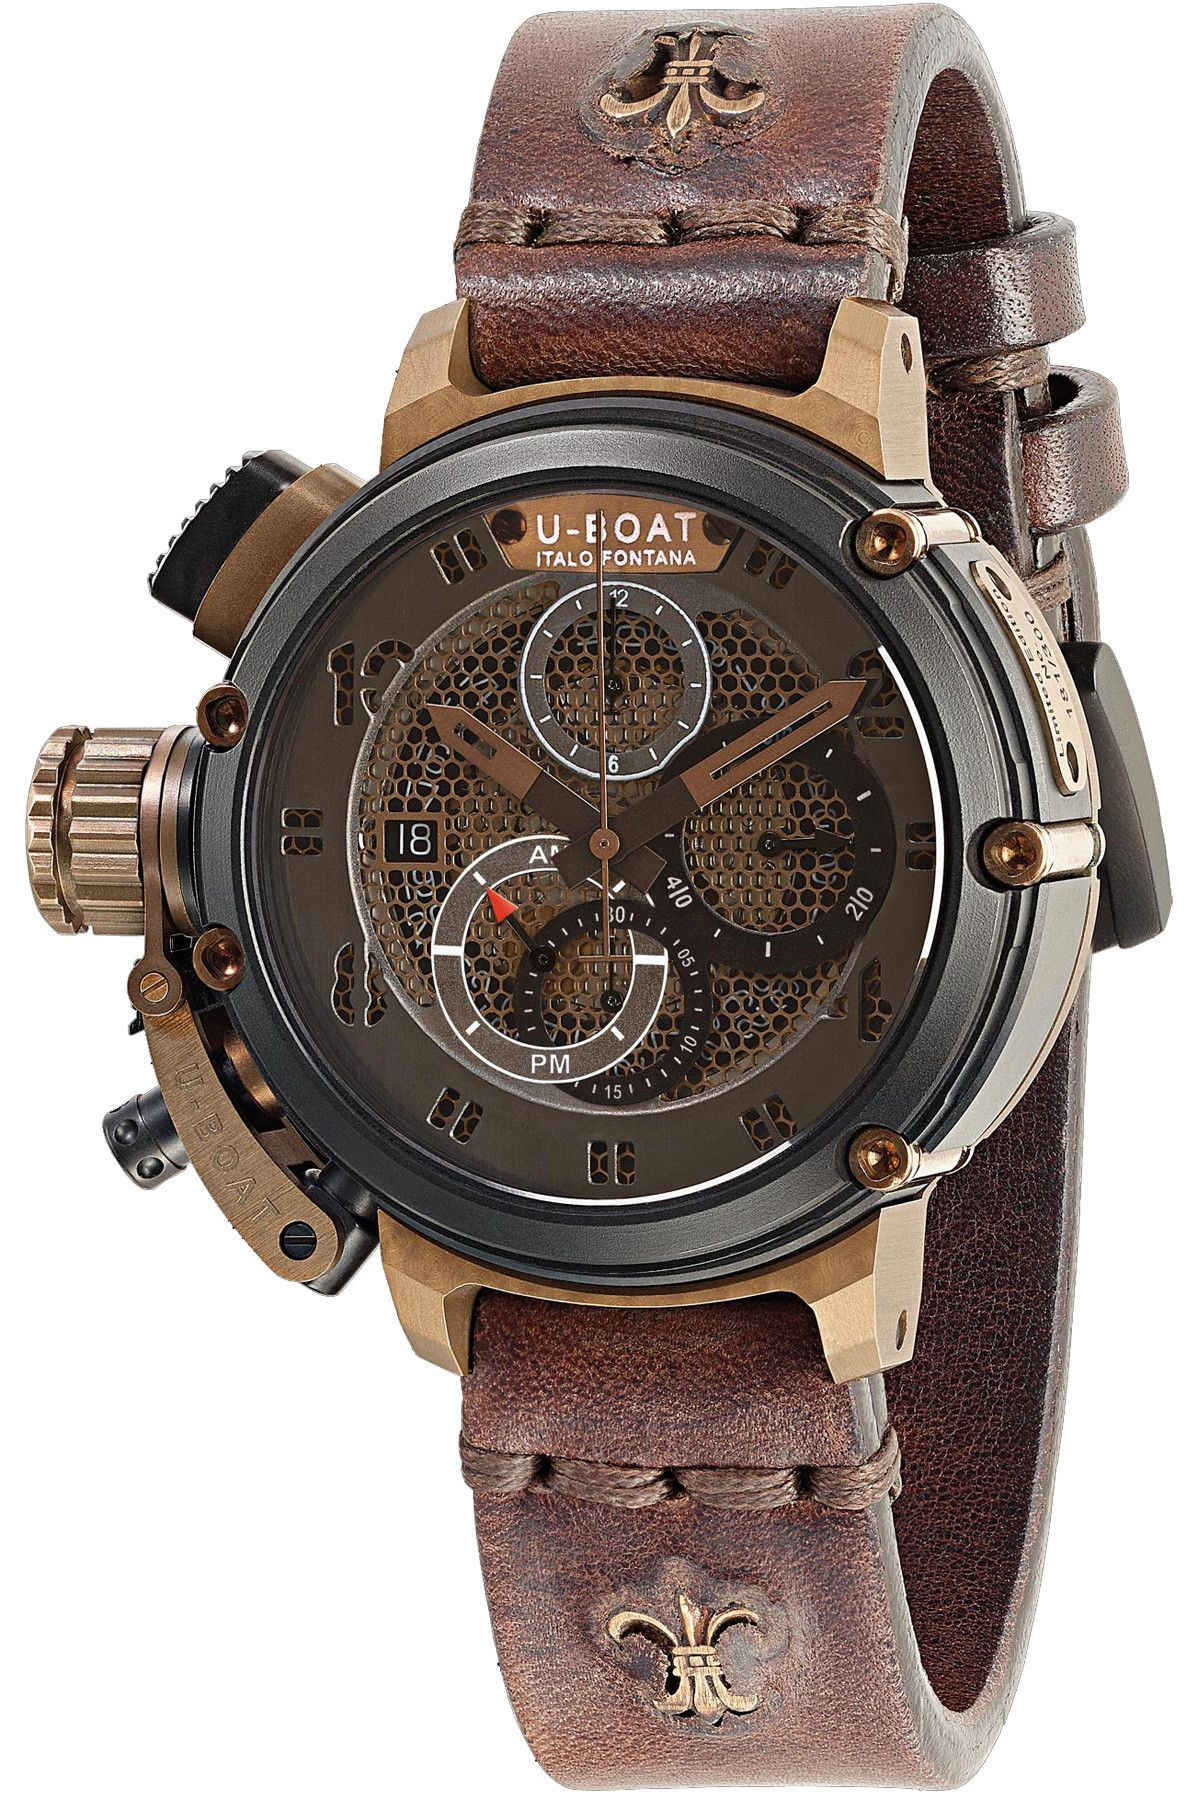 07e4da90640 U-Boat Watch Chimera Net Black Bronze Limited Edition